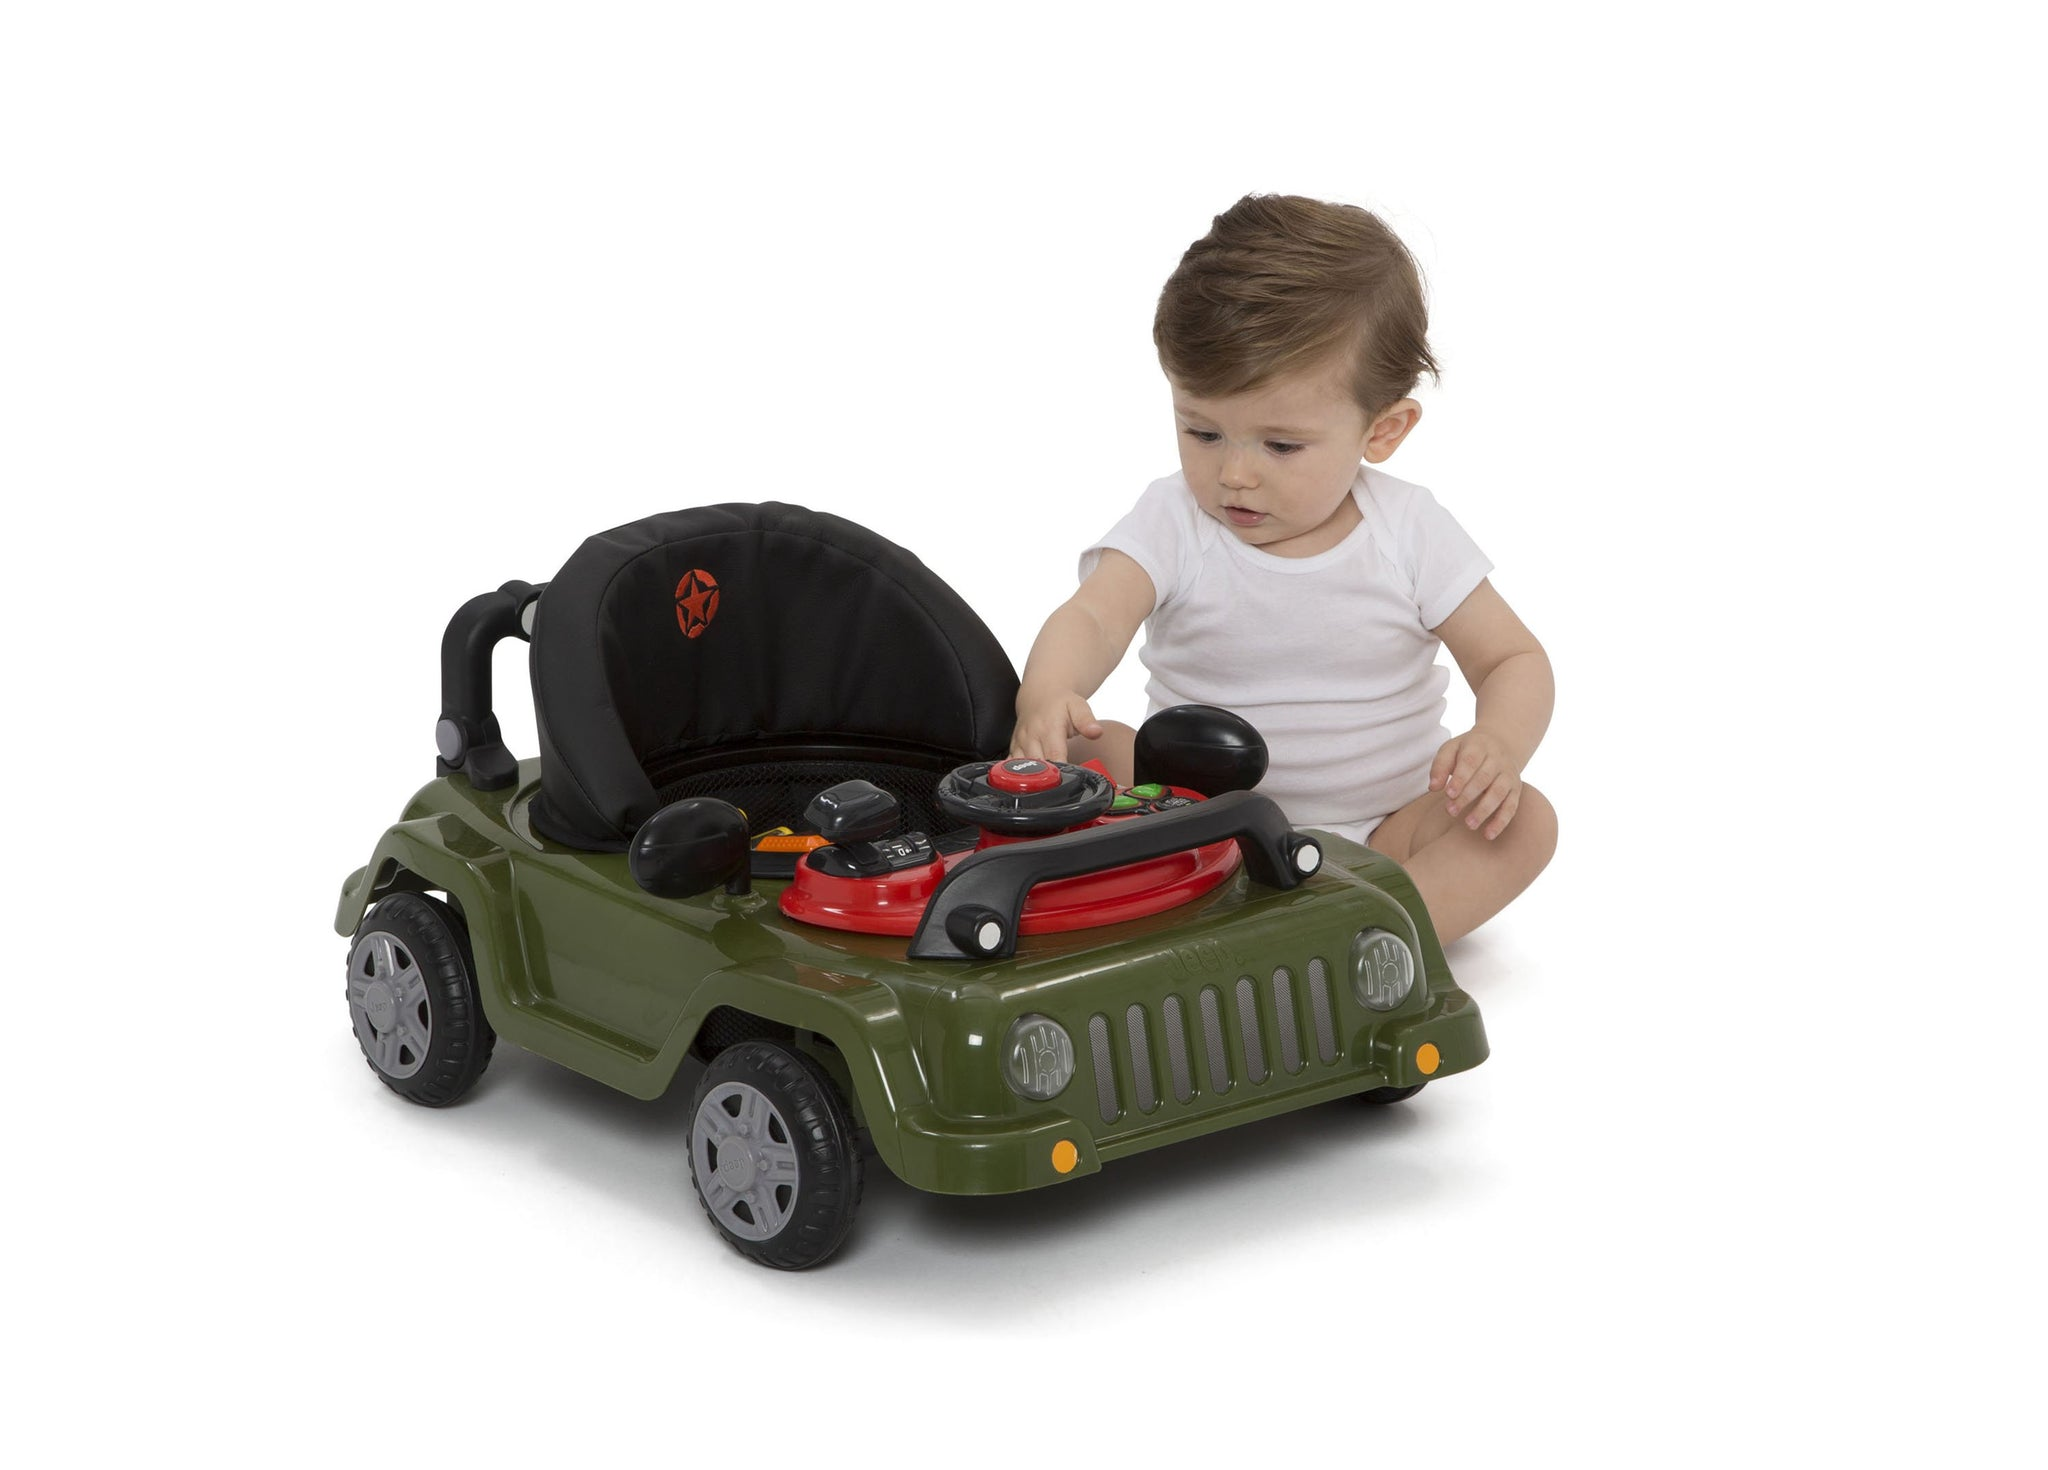 J is for Jeep Anniversary Green (348) Classic Wrangler 3-in-1 Activity Walker (22408),  Baby Silo, a8a